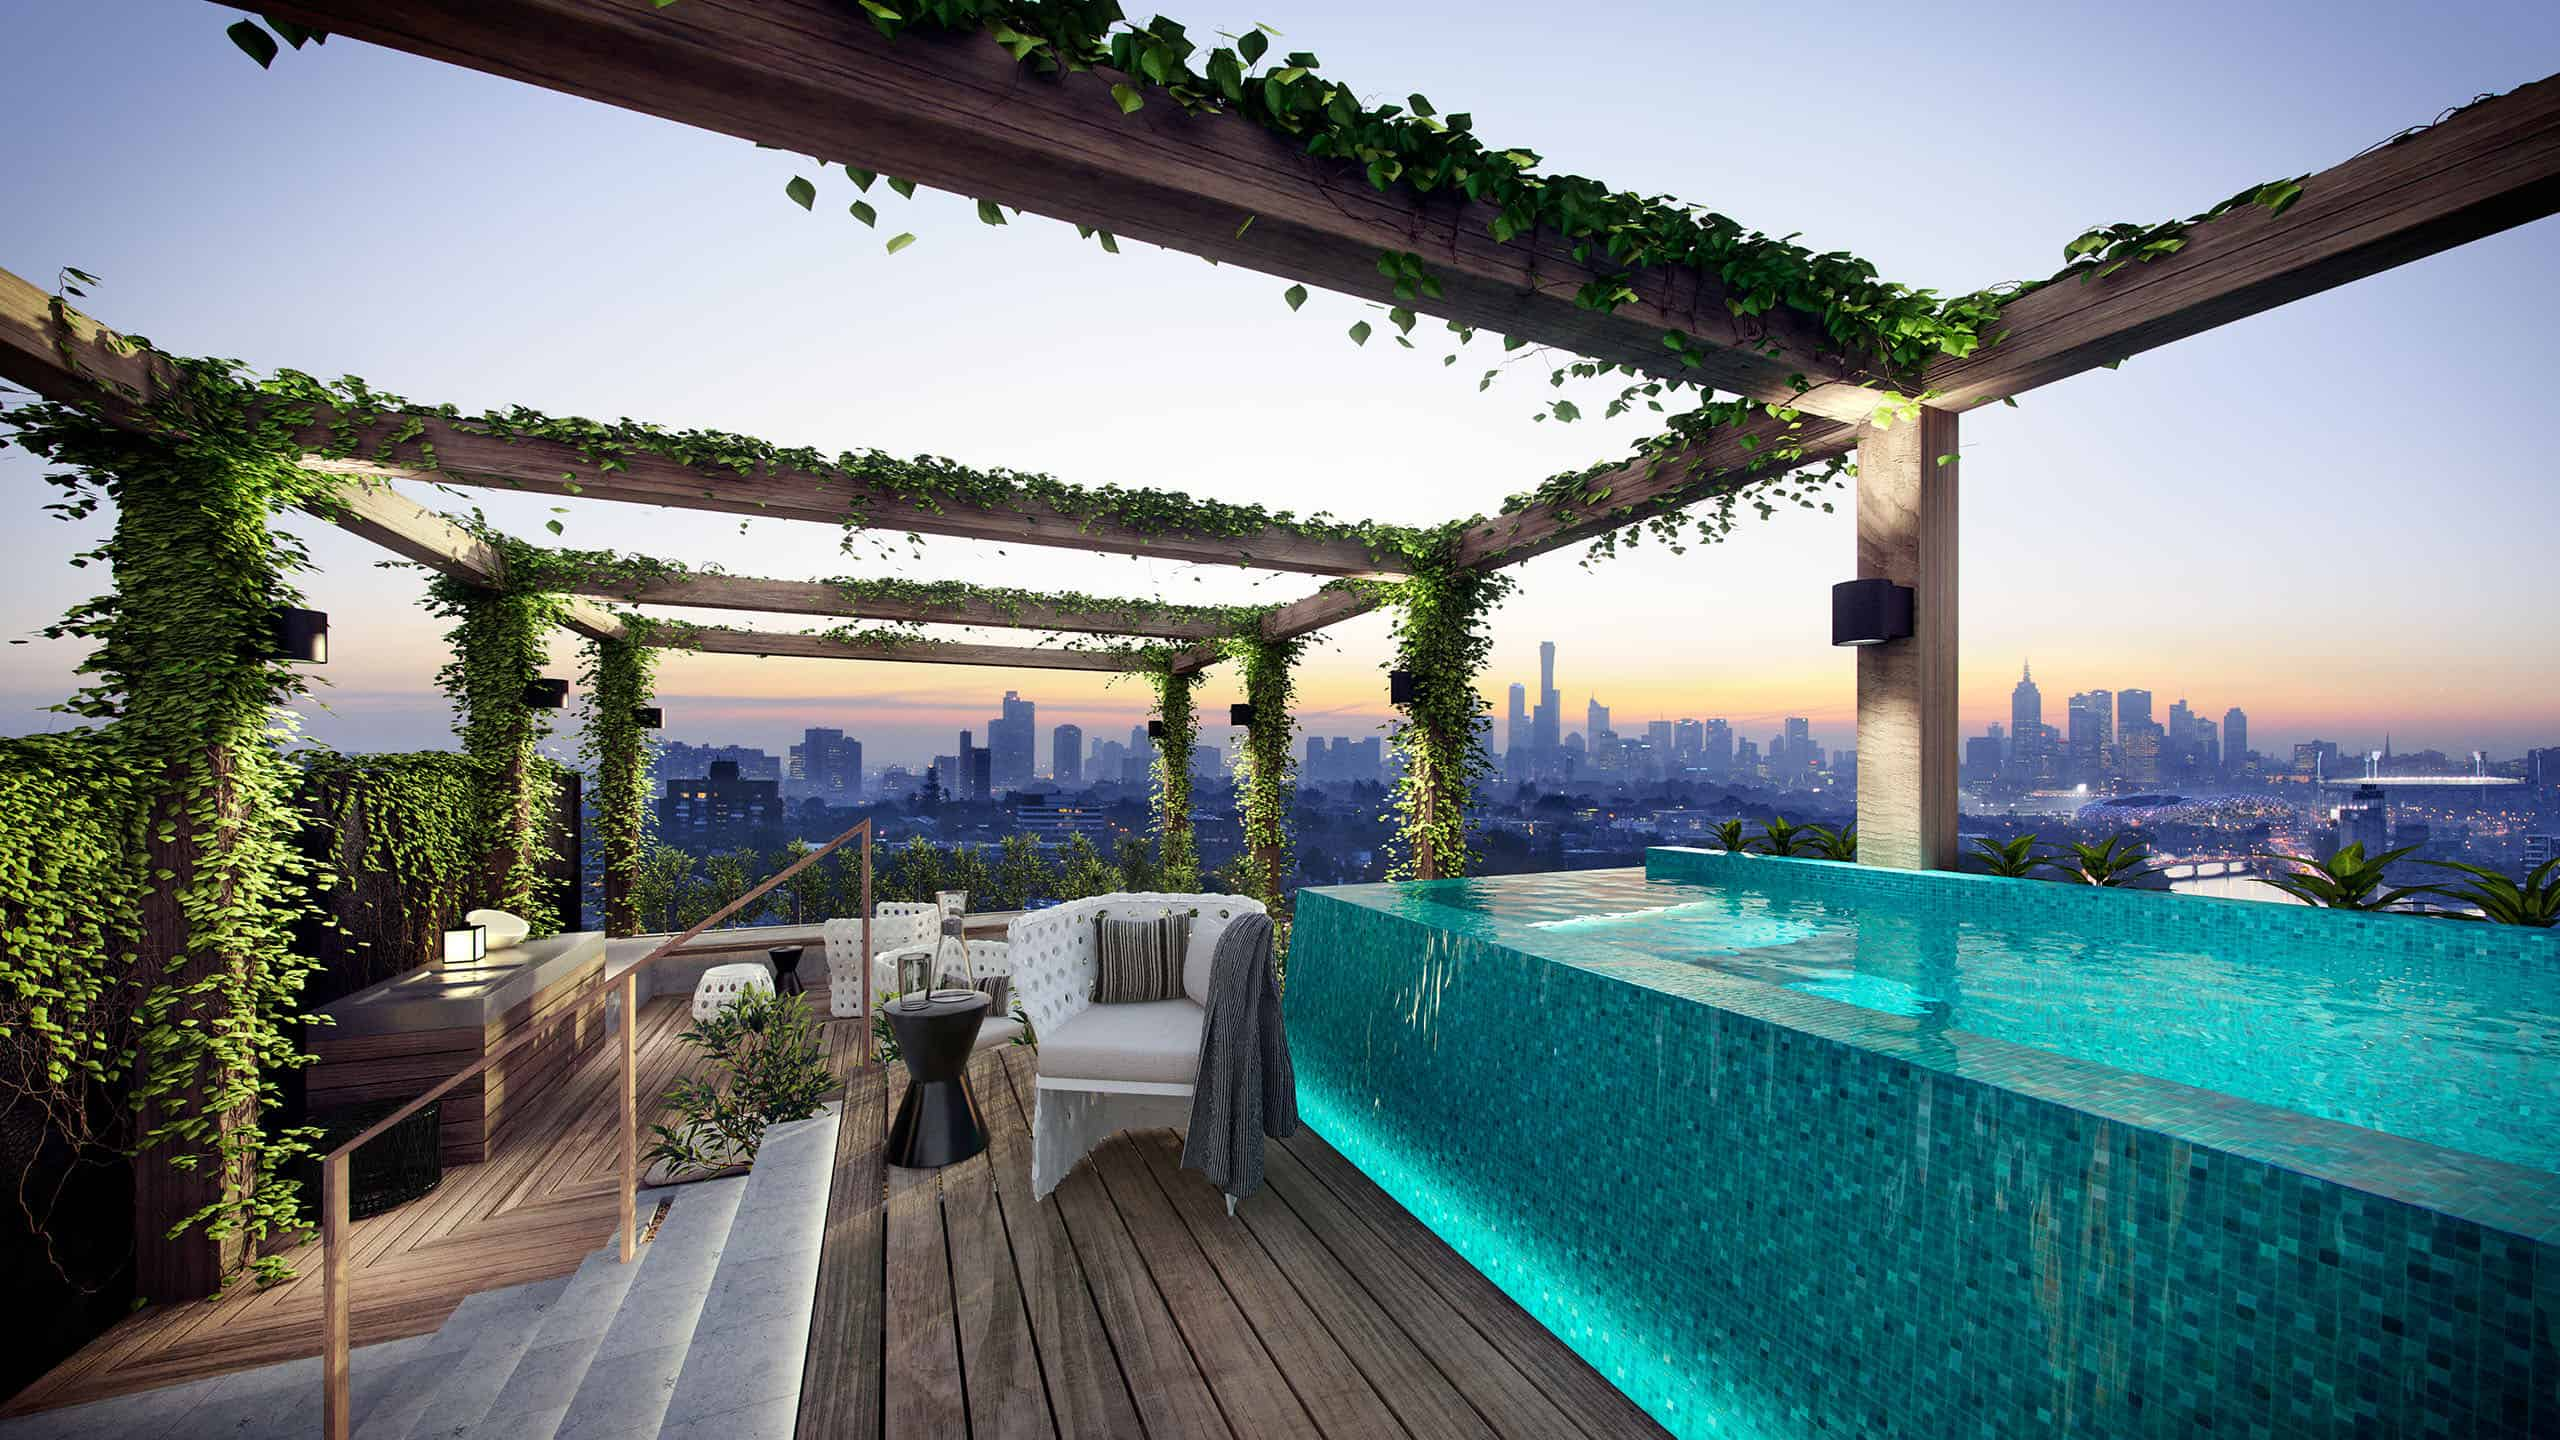 Solar Lap Pools 55 Most Awesome Swimming Pool Designs On The Planet